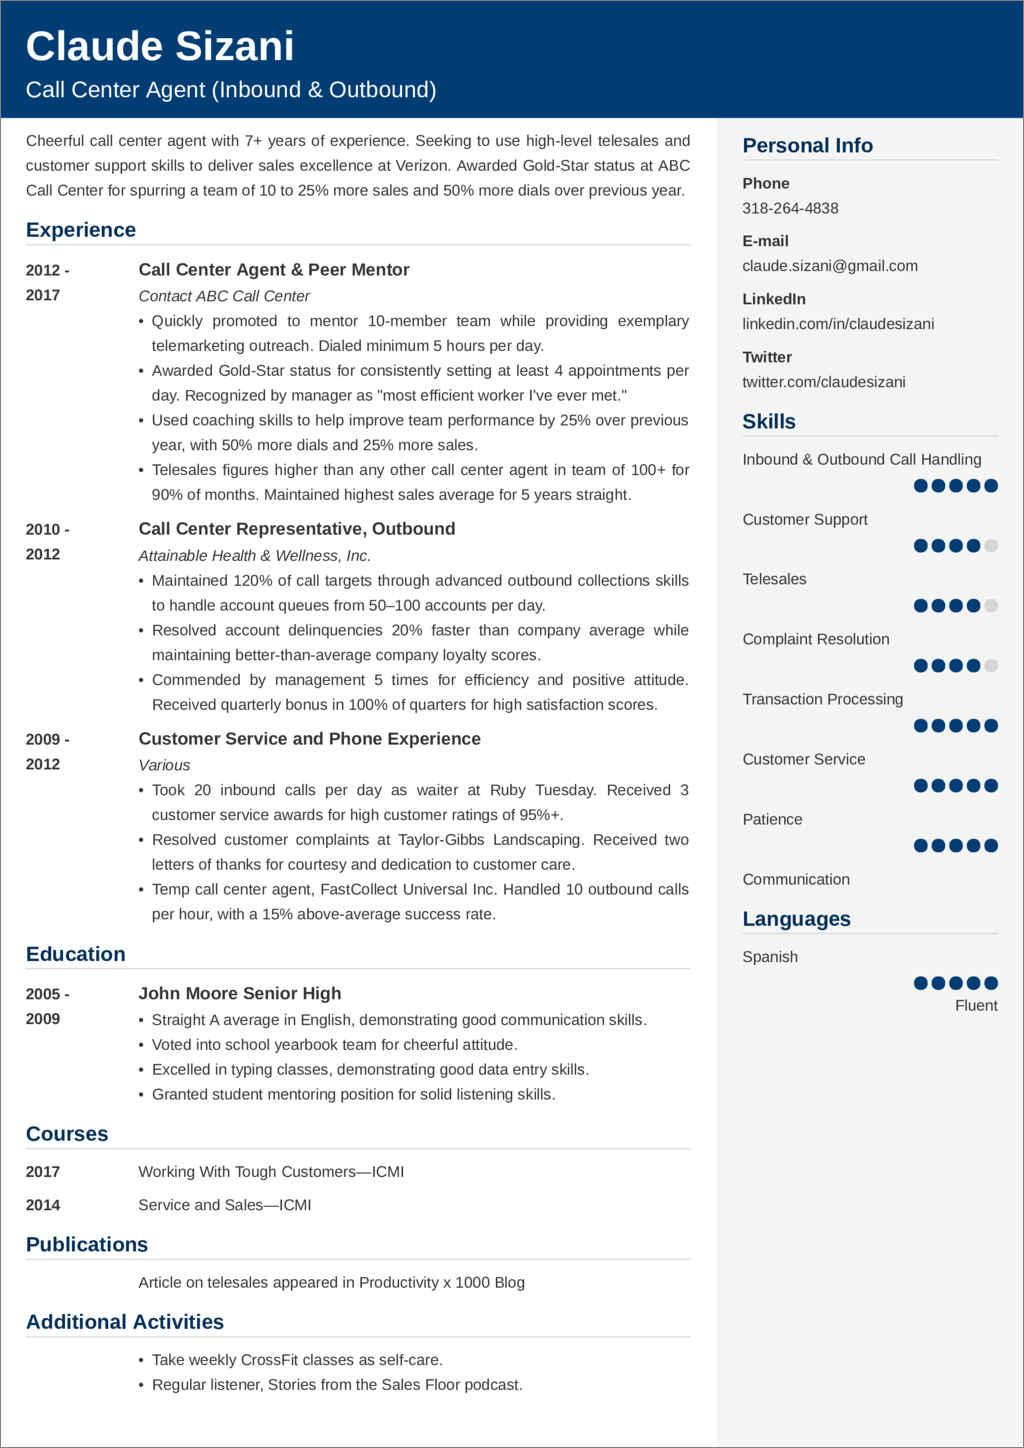 call center resume sample—25 examples and writing tips